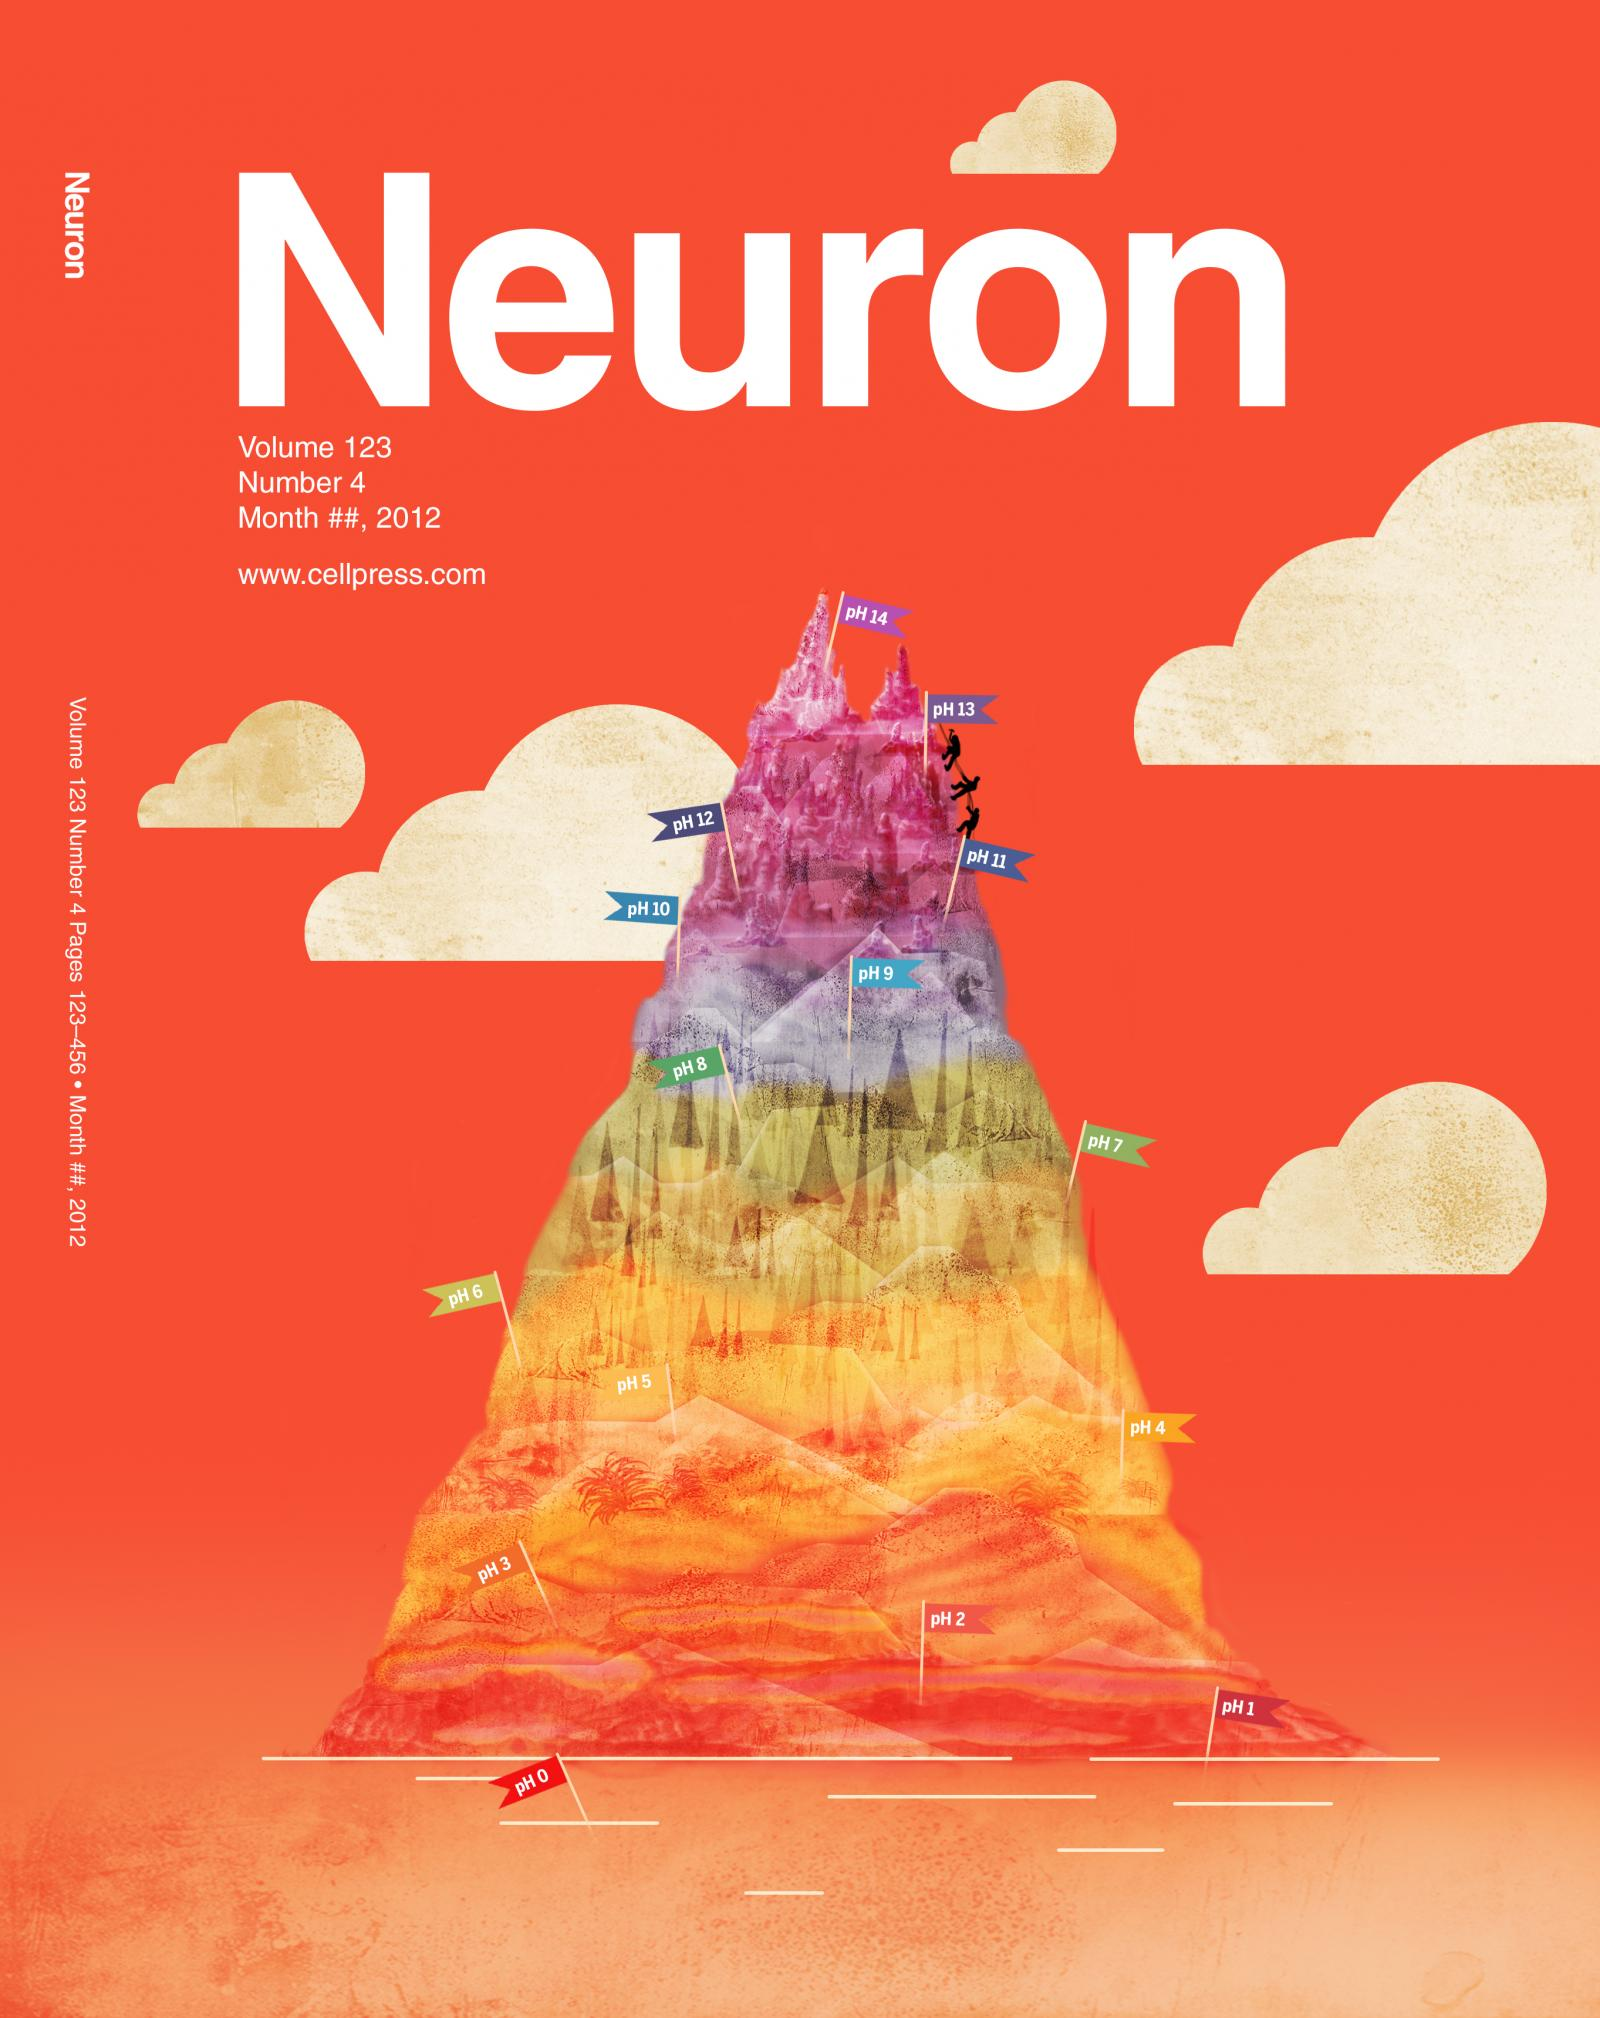 Neuron cover example